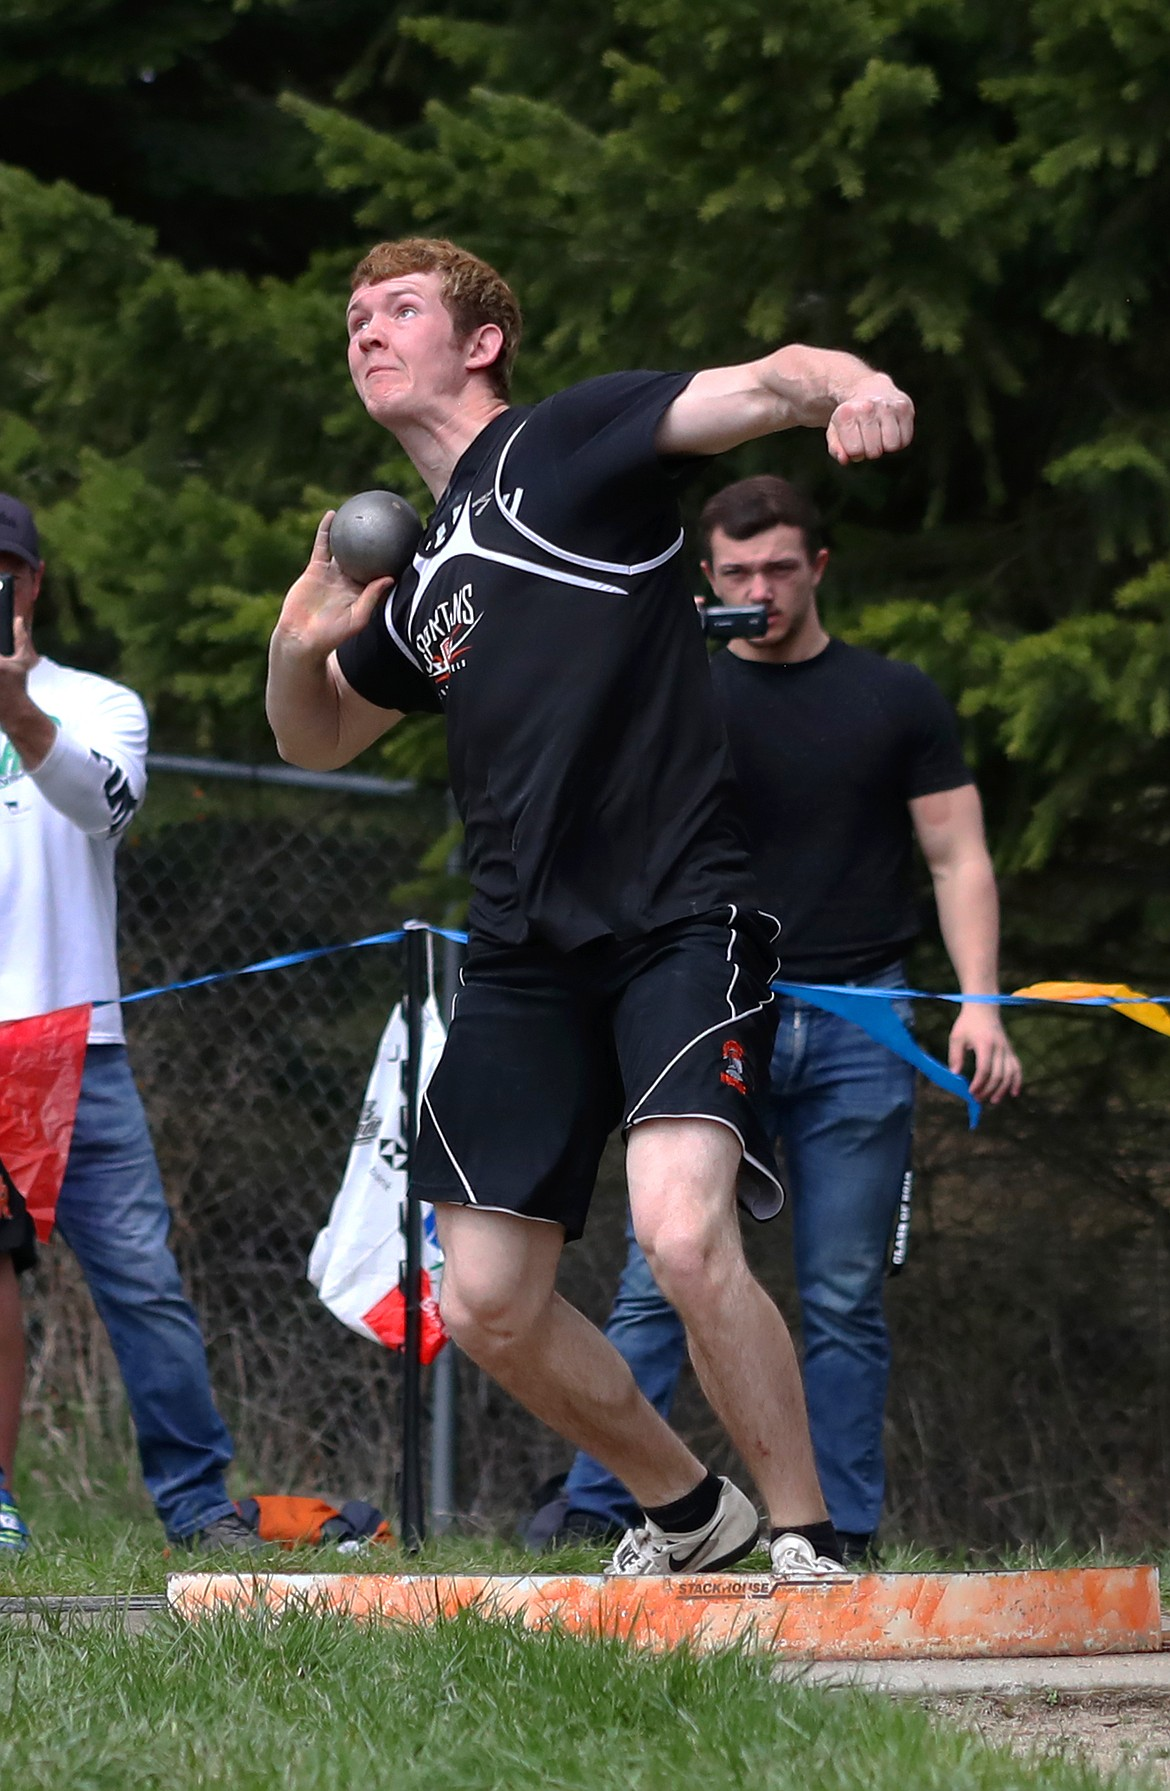 (Photo by KYLE CAJERO)   Priest River's Colby Poe throws the shot put during the Priest River Invitational on April 20, 2019. Poe is a finalist for the 3A-1A boys track award.